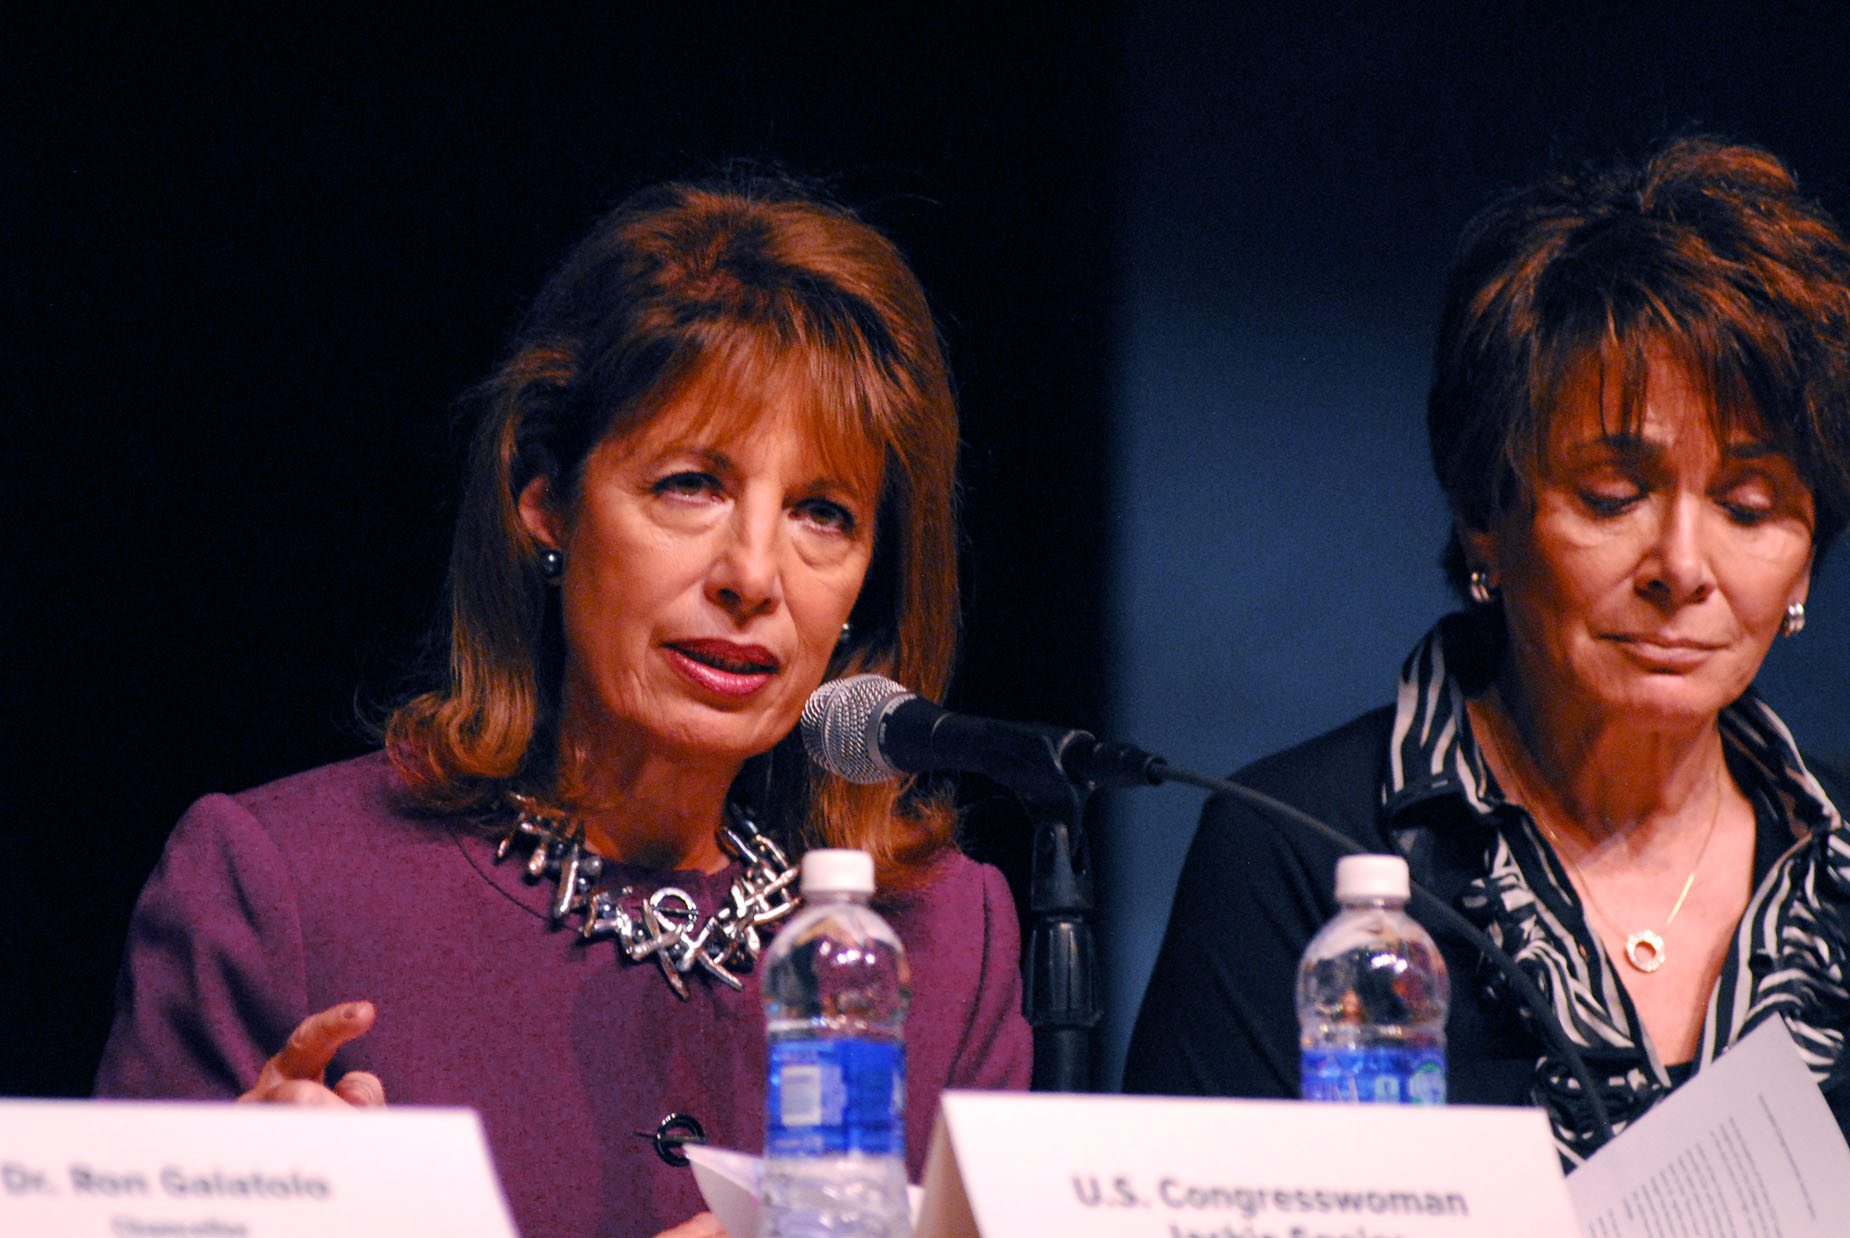 Rep. Speier calls for federal accreditation reform, citing CCSF debacle